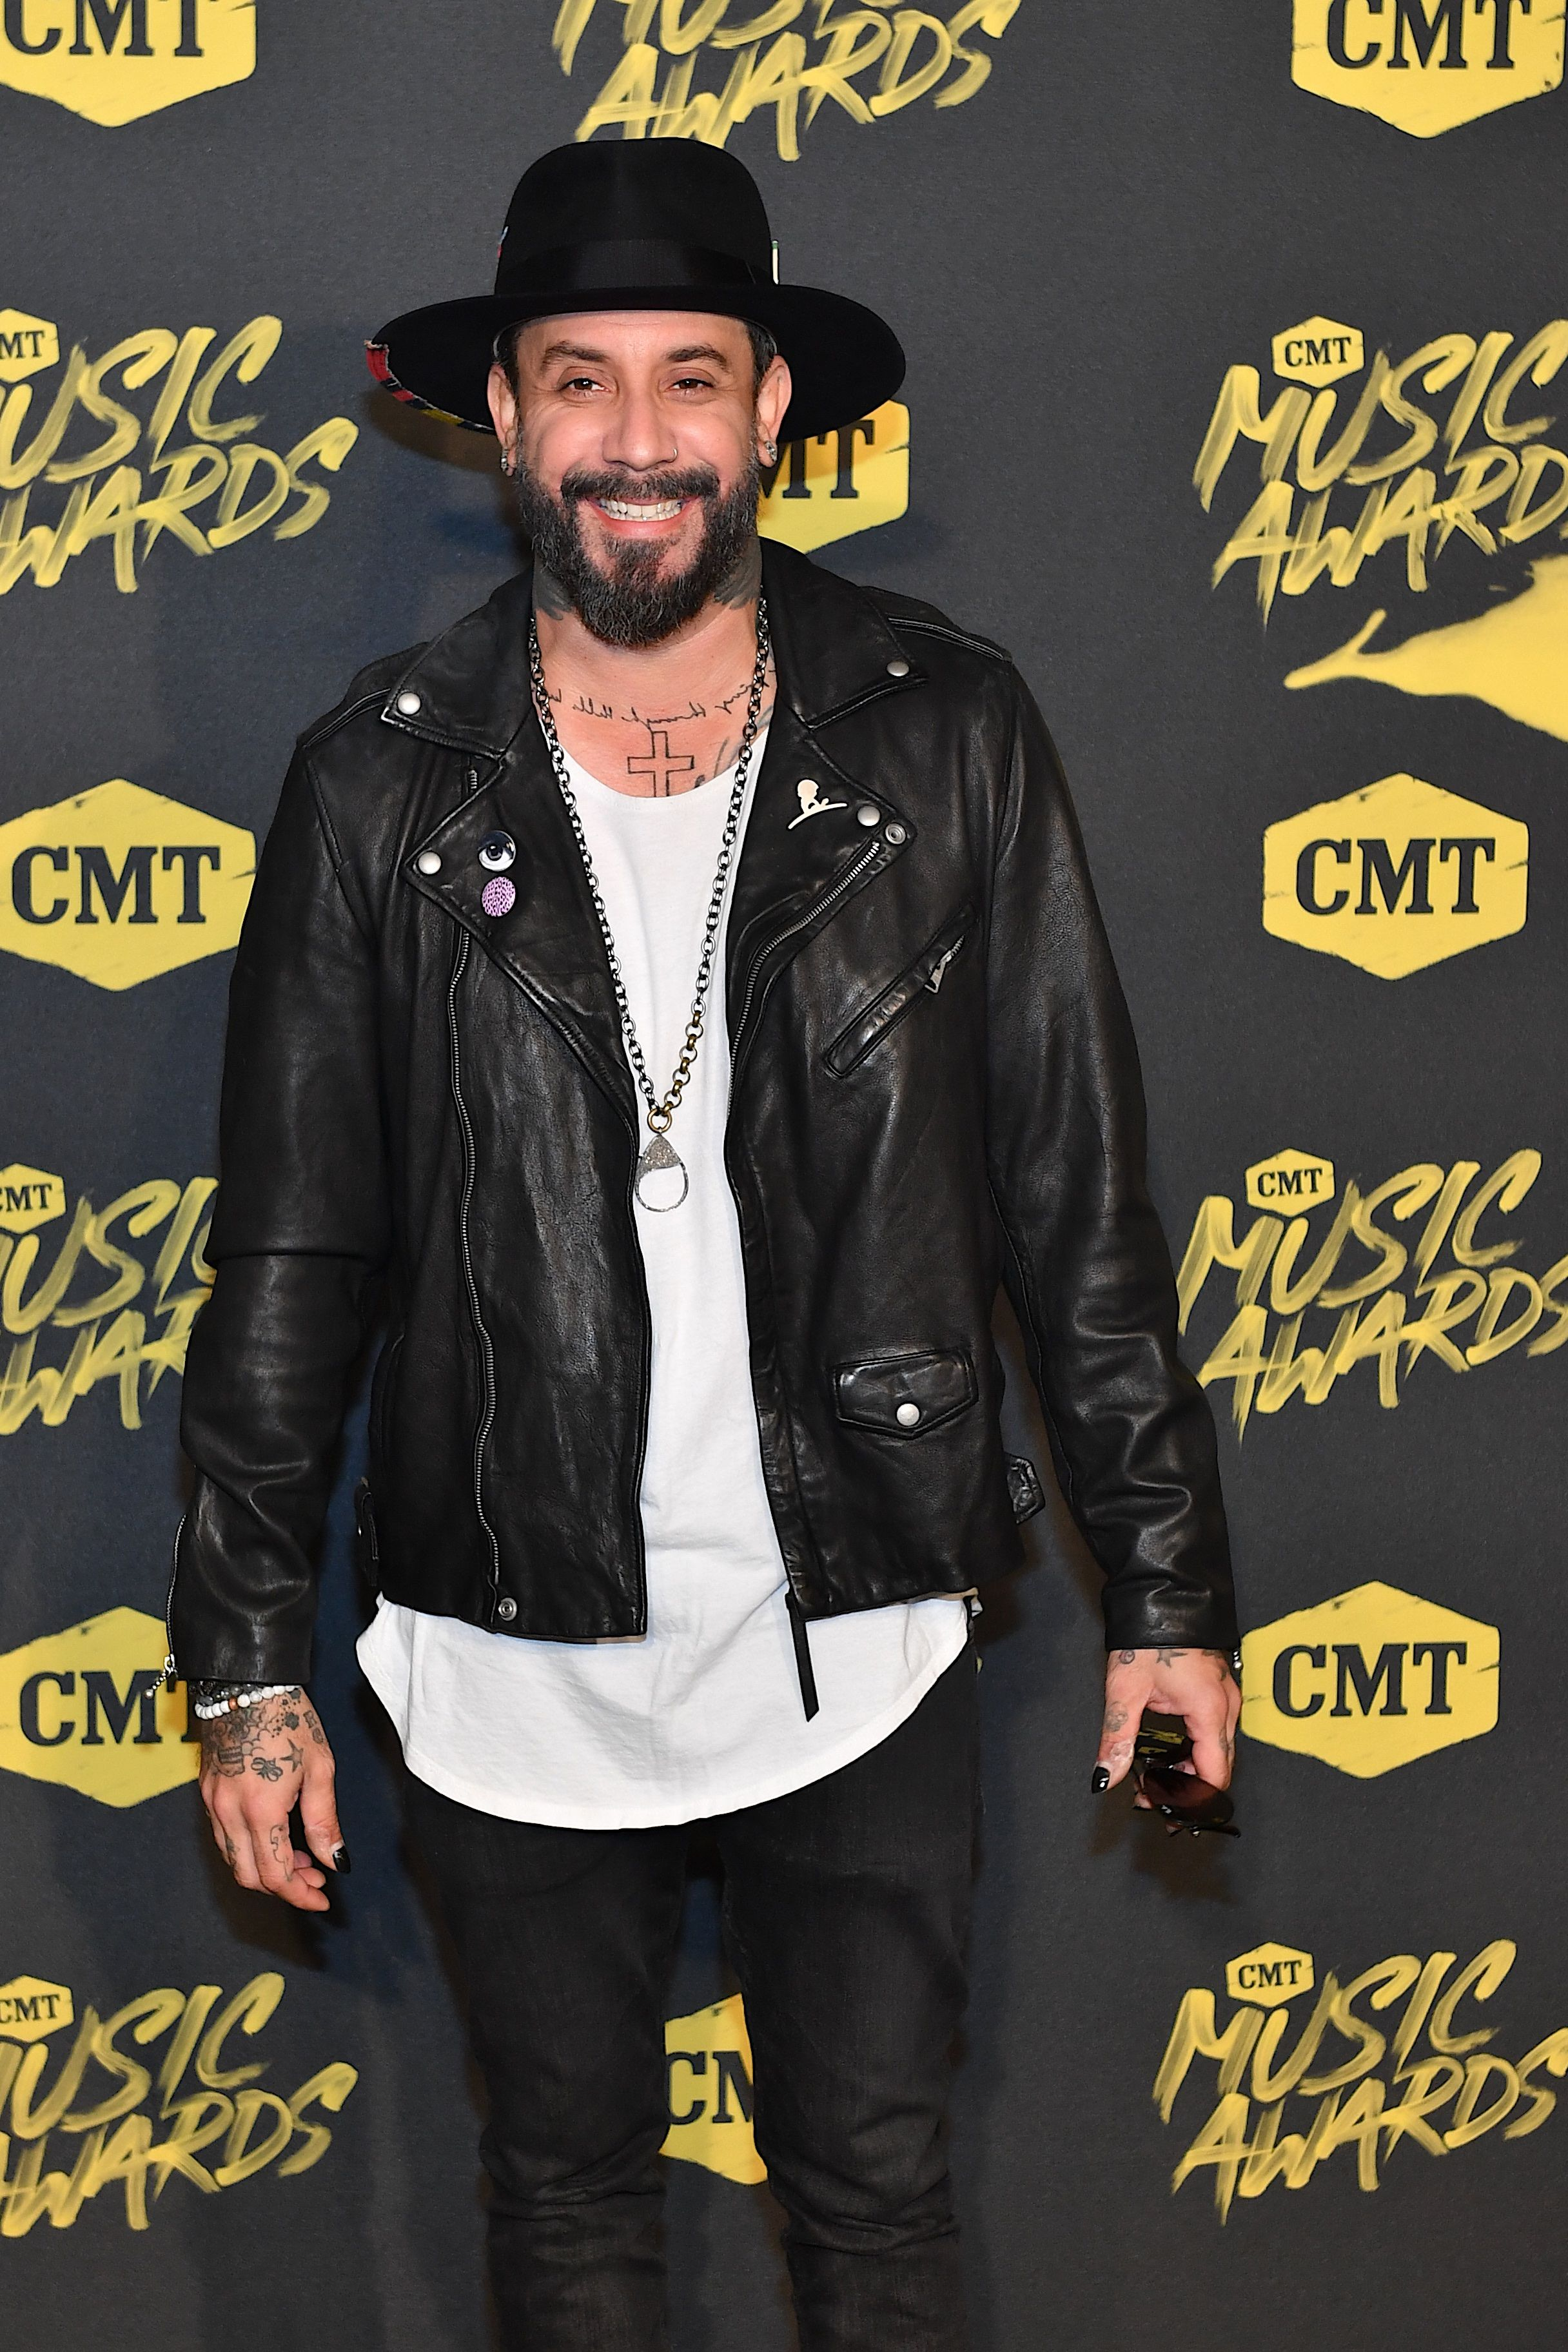 A.J. McLean at the 2018 CMT Music Awards at Bridgestone Arena on June 6, 2018 in Nashville, Tennessee. | Photo: Getty Images.